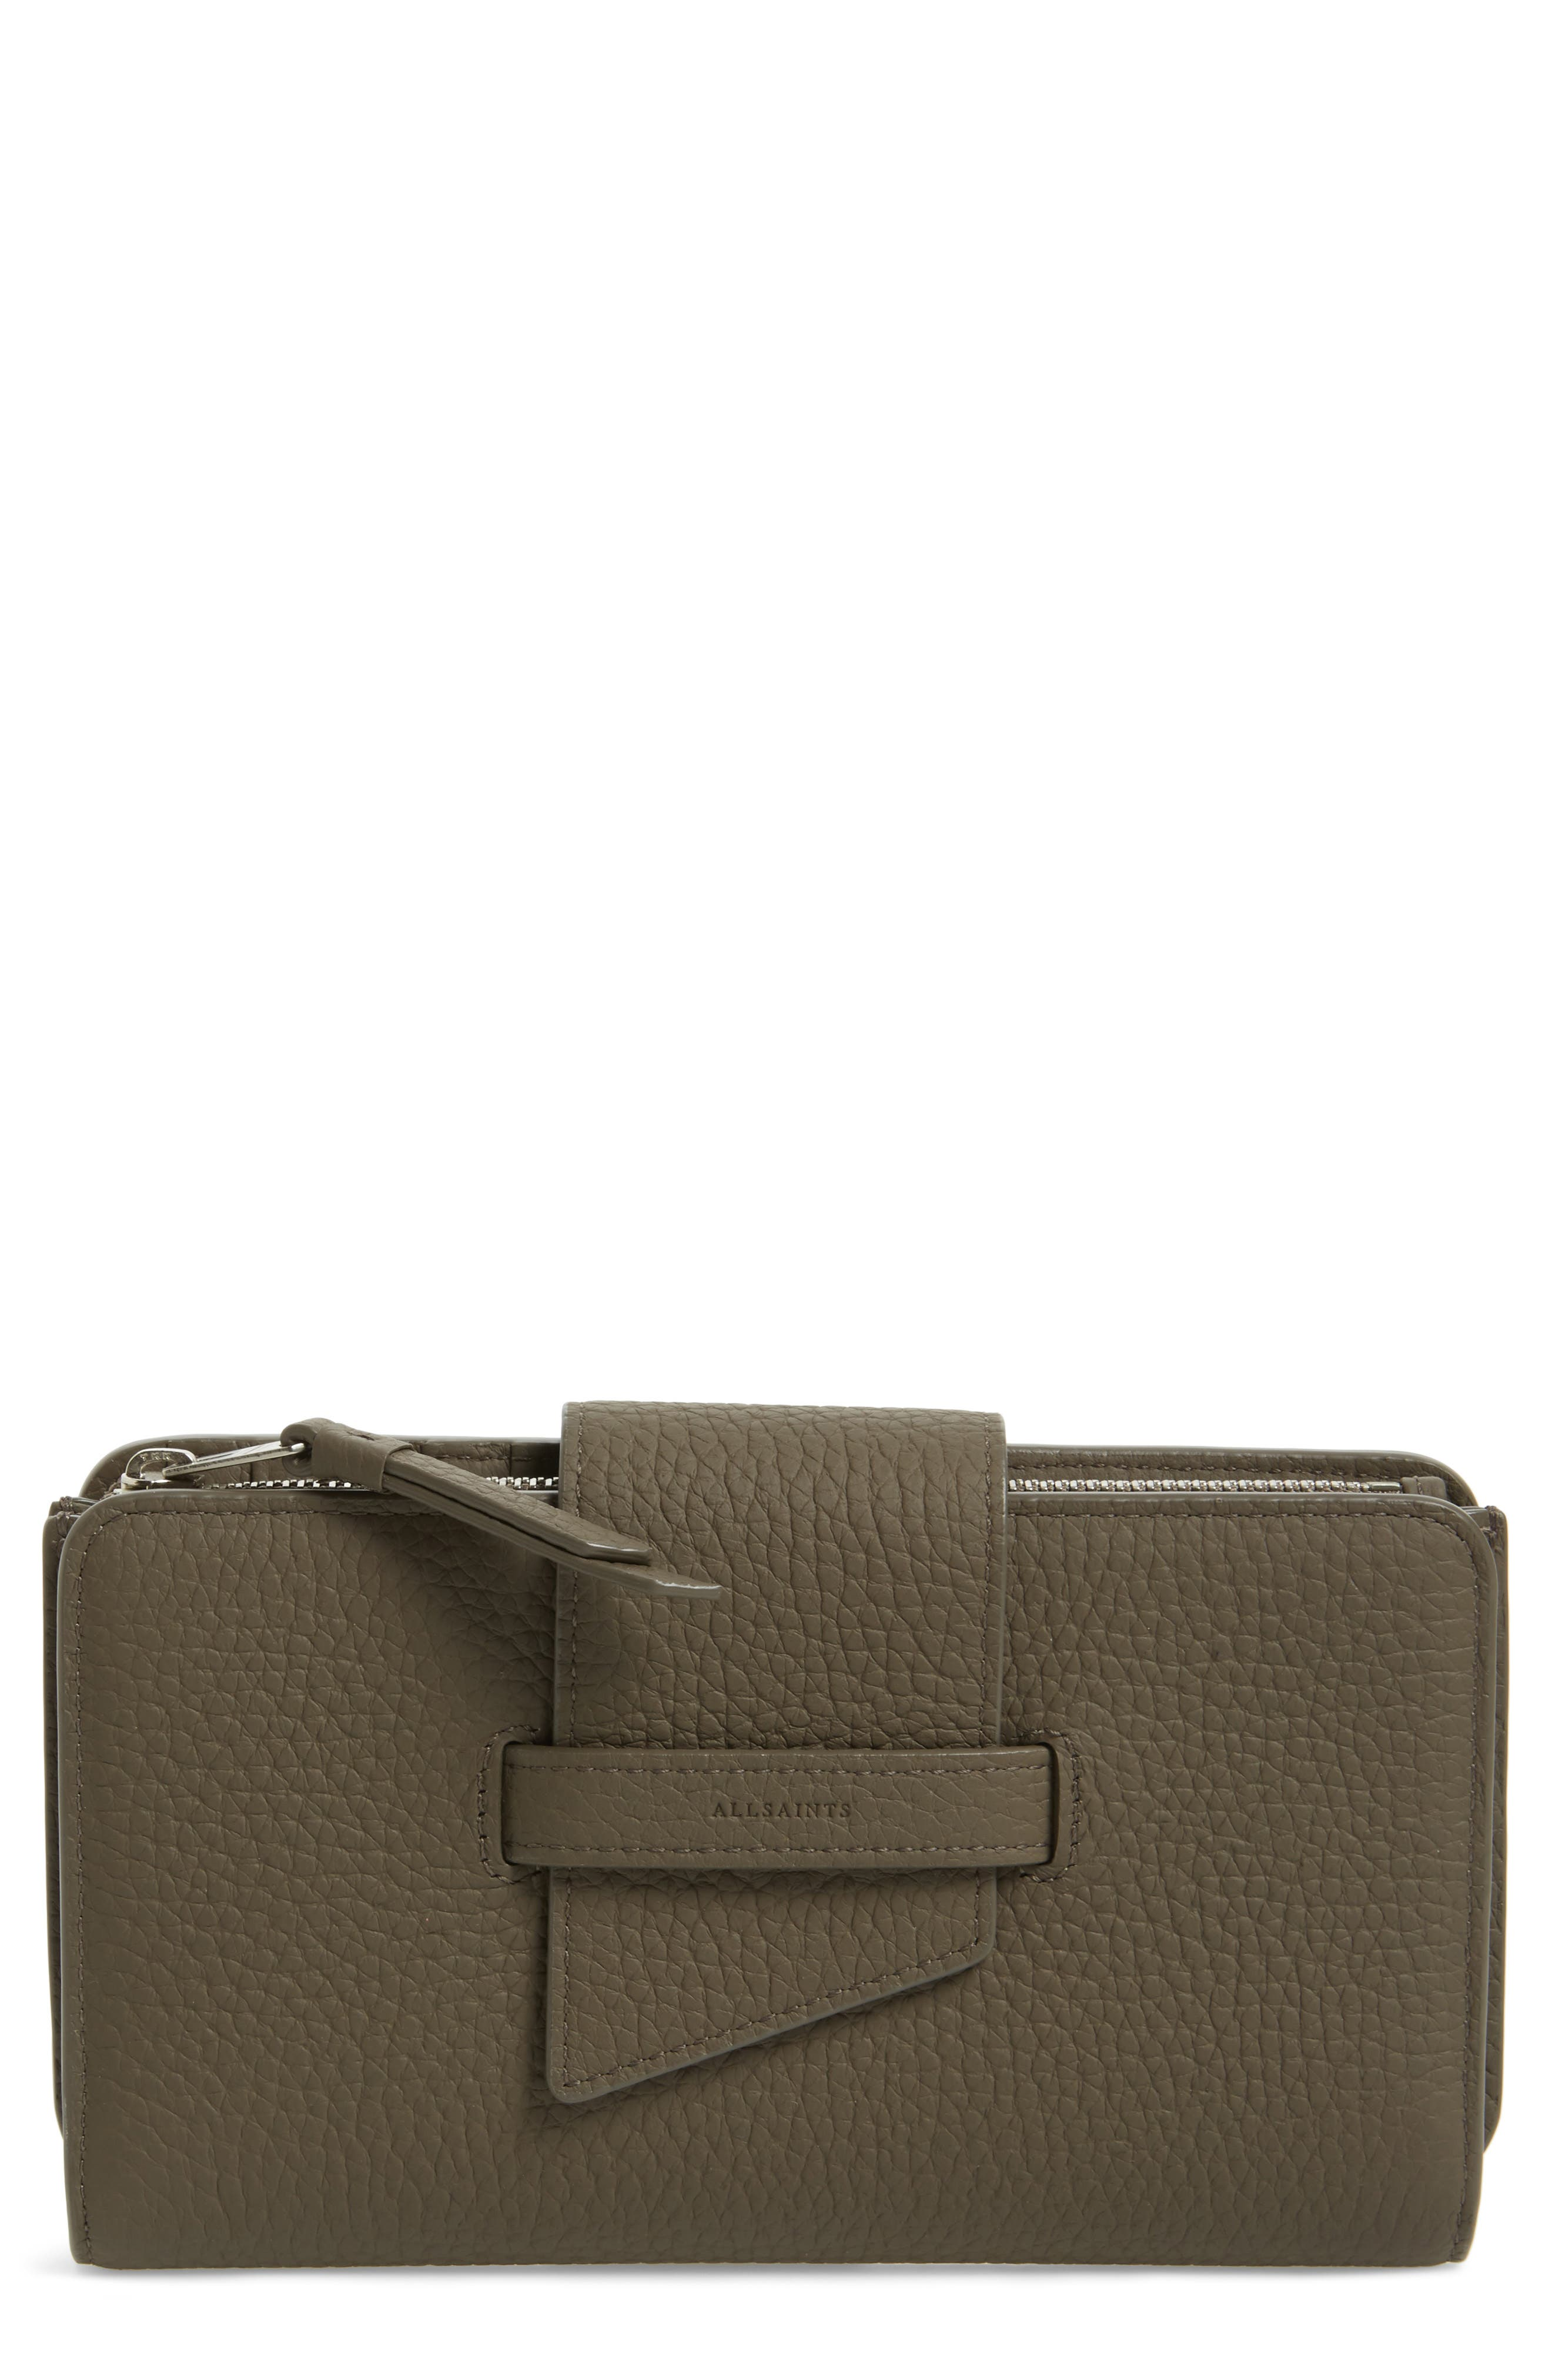 Main Image - ALLSAINTS Ray Leather Wallet